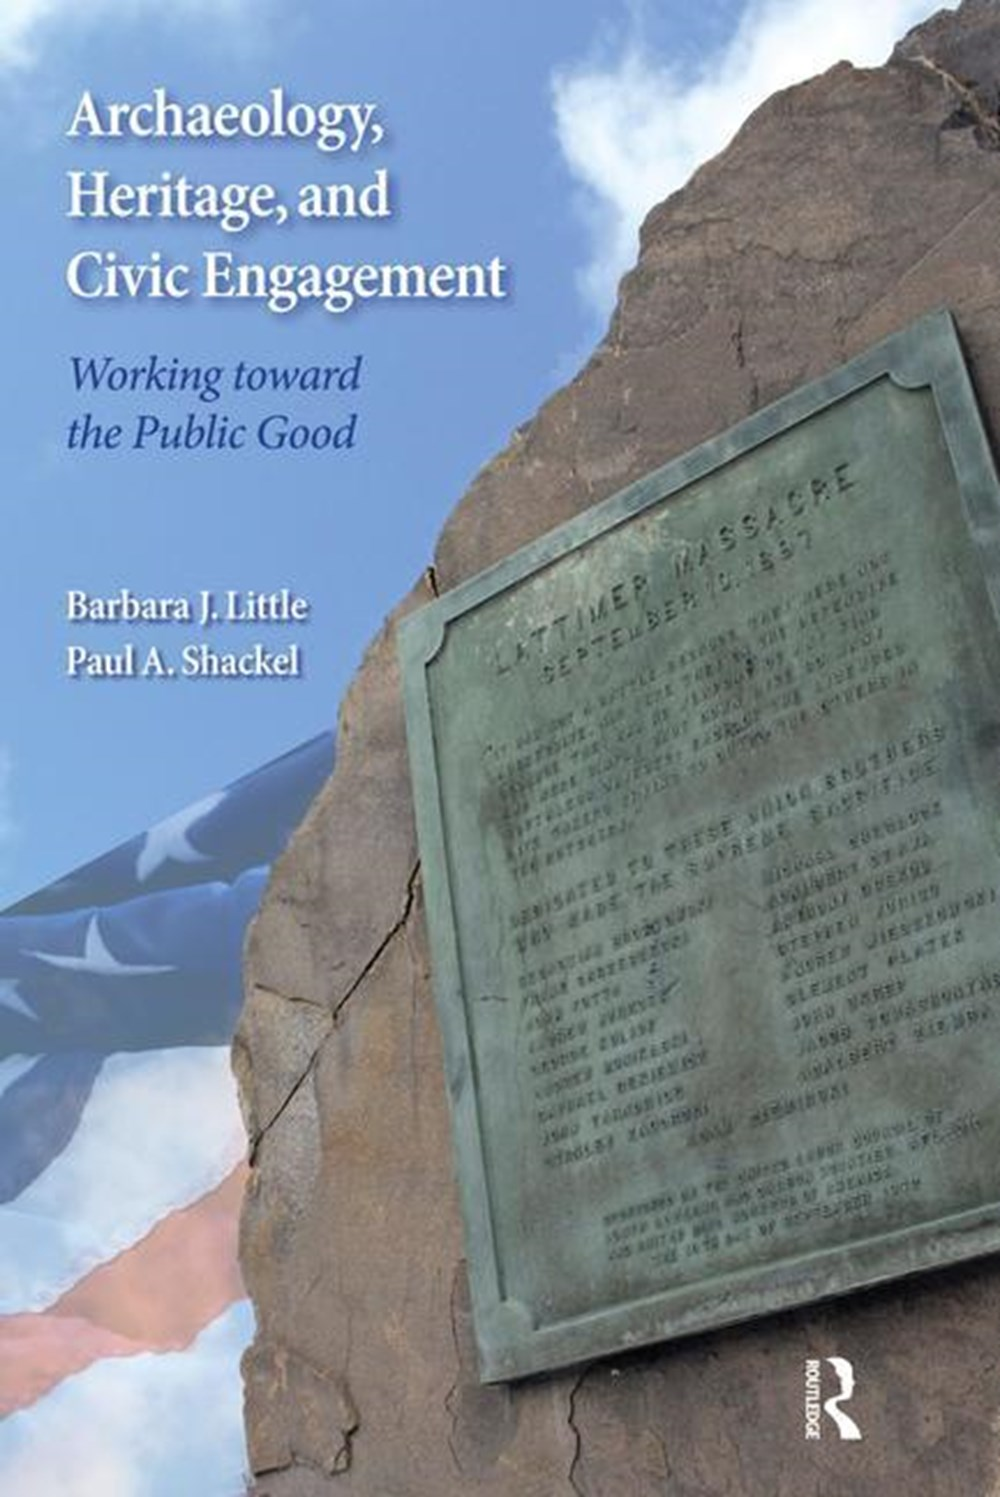 Archaeology, Heritage, and Civic Engagement Working Toward the Public Good